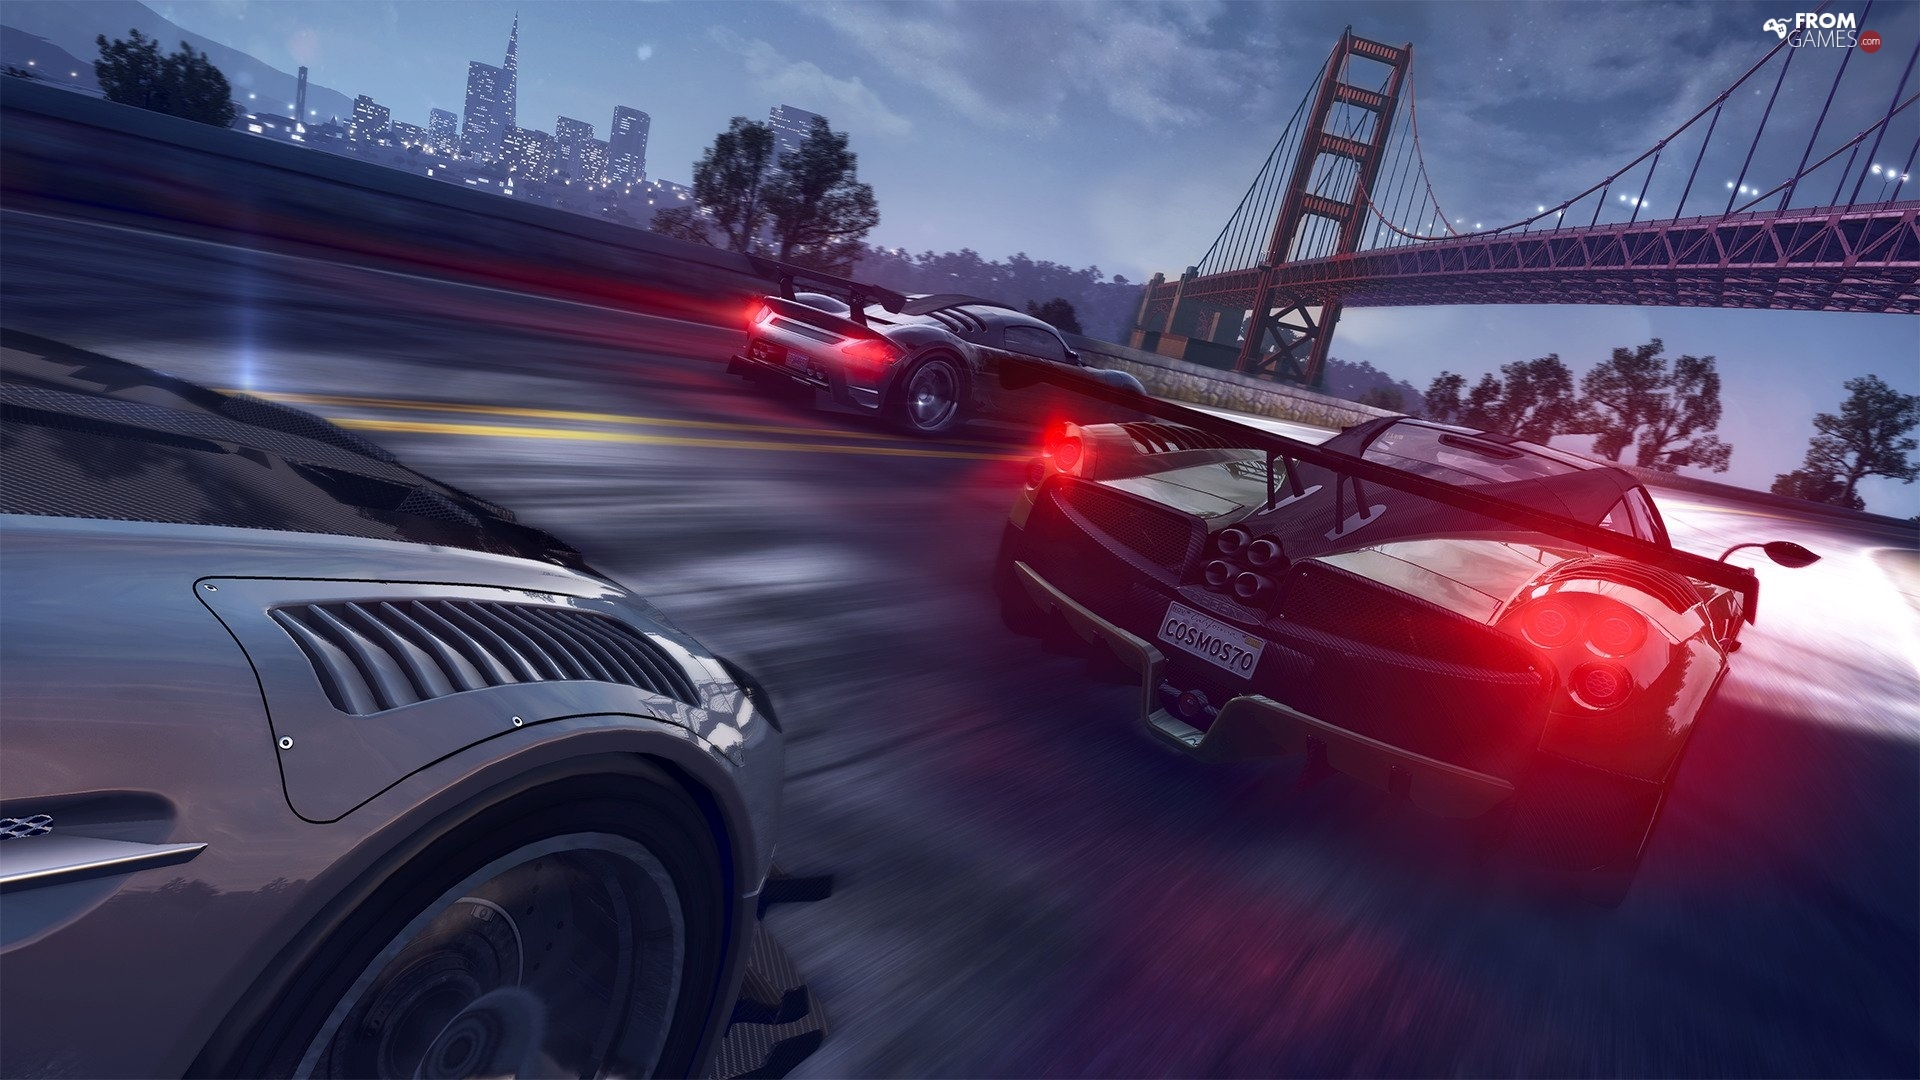 The Crew, race, bridge, cars